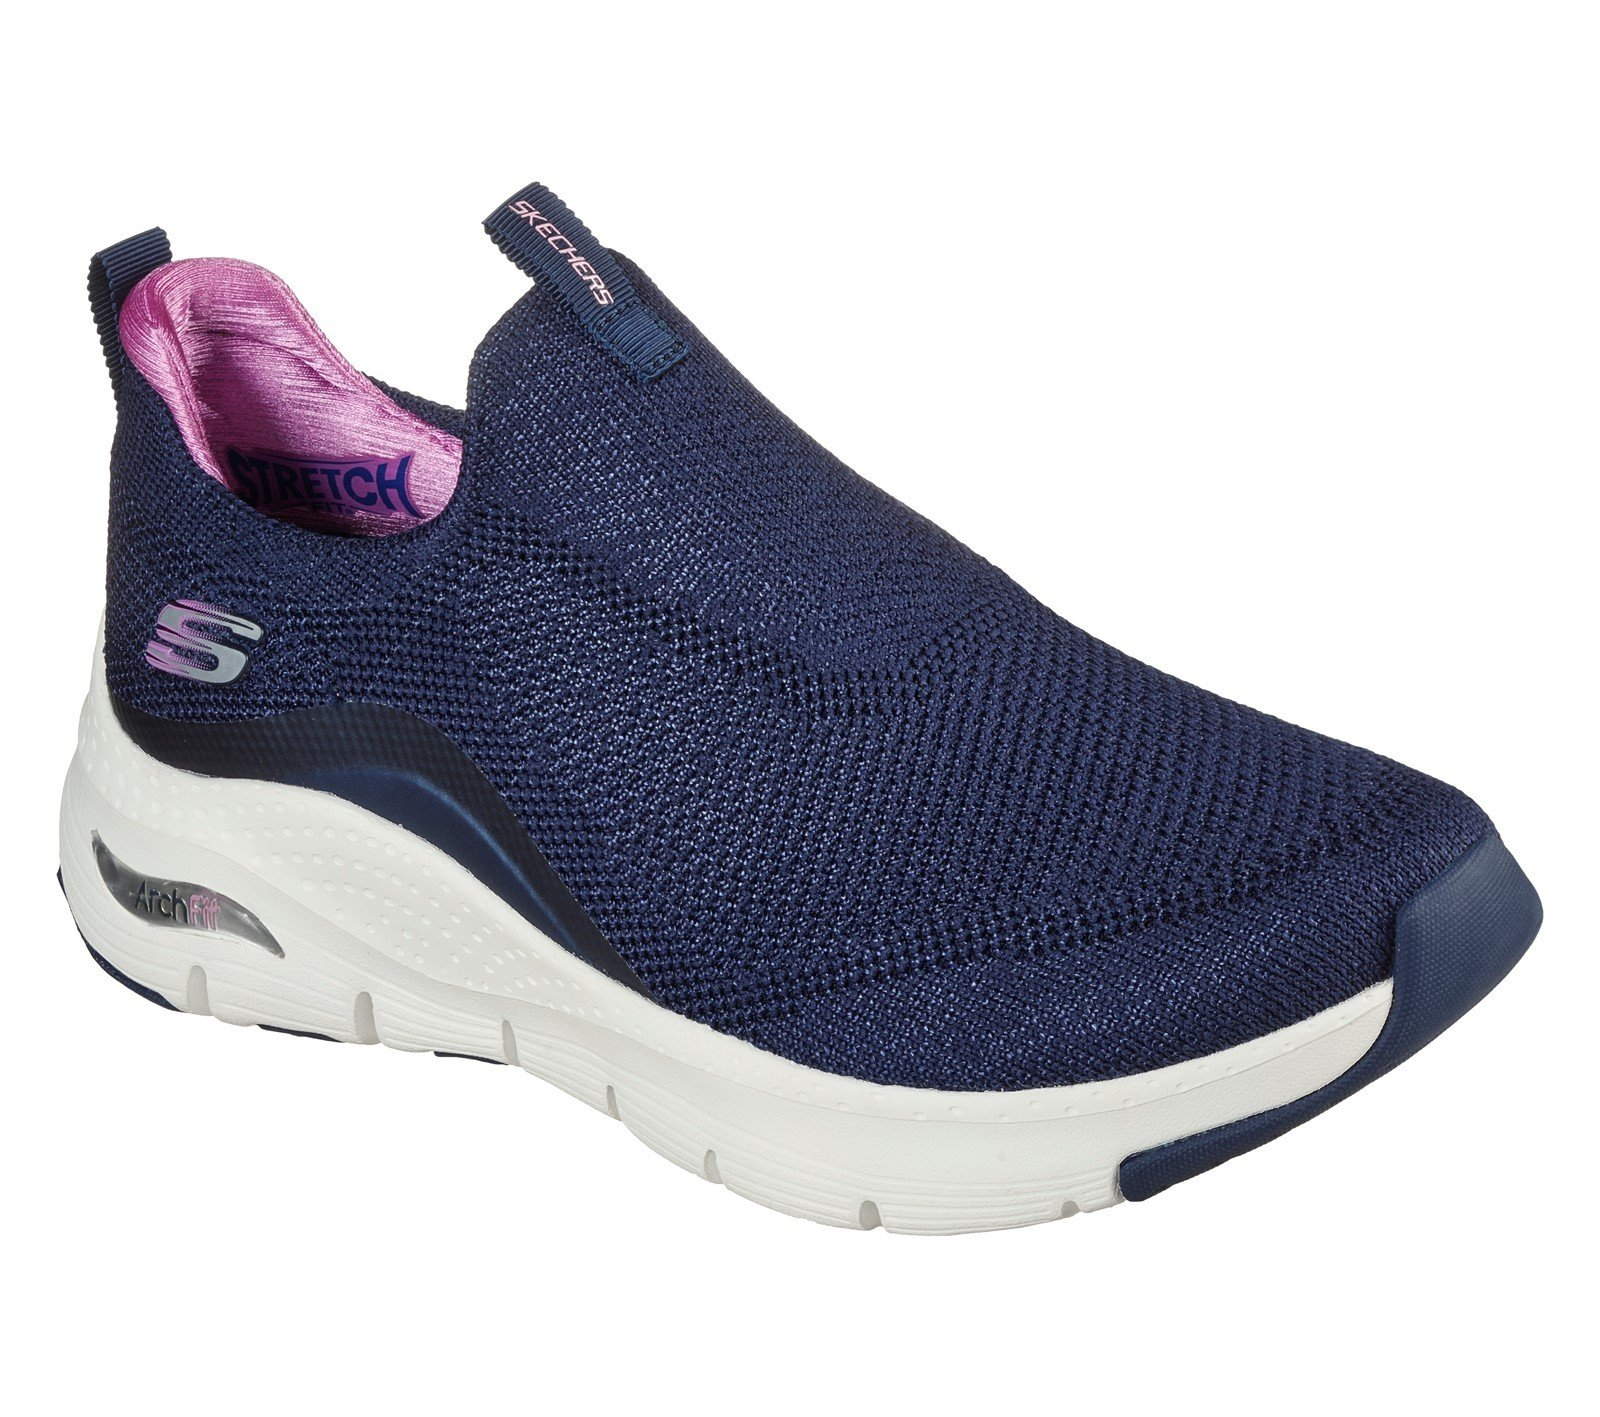 Skechers Women's Arch Fit Keep It Up Sport Trainer Various Colours 32108 - Navy/Purple 3